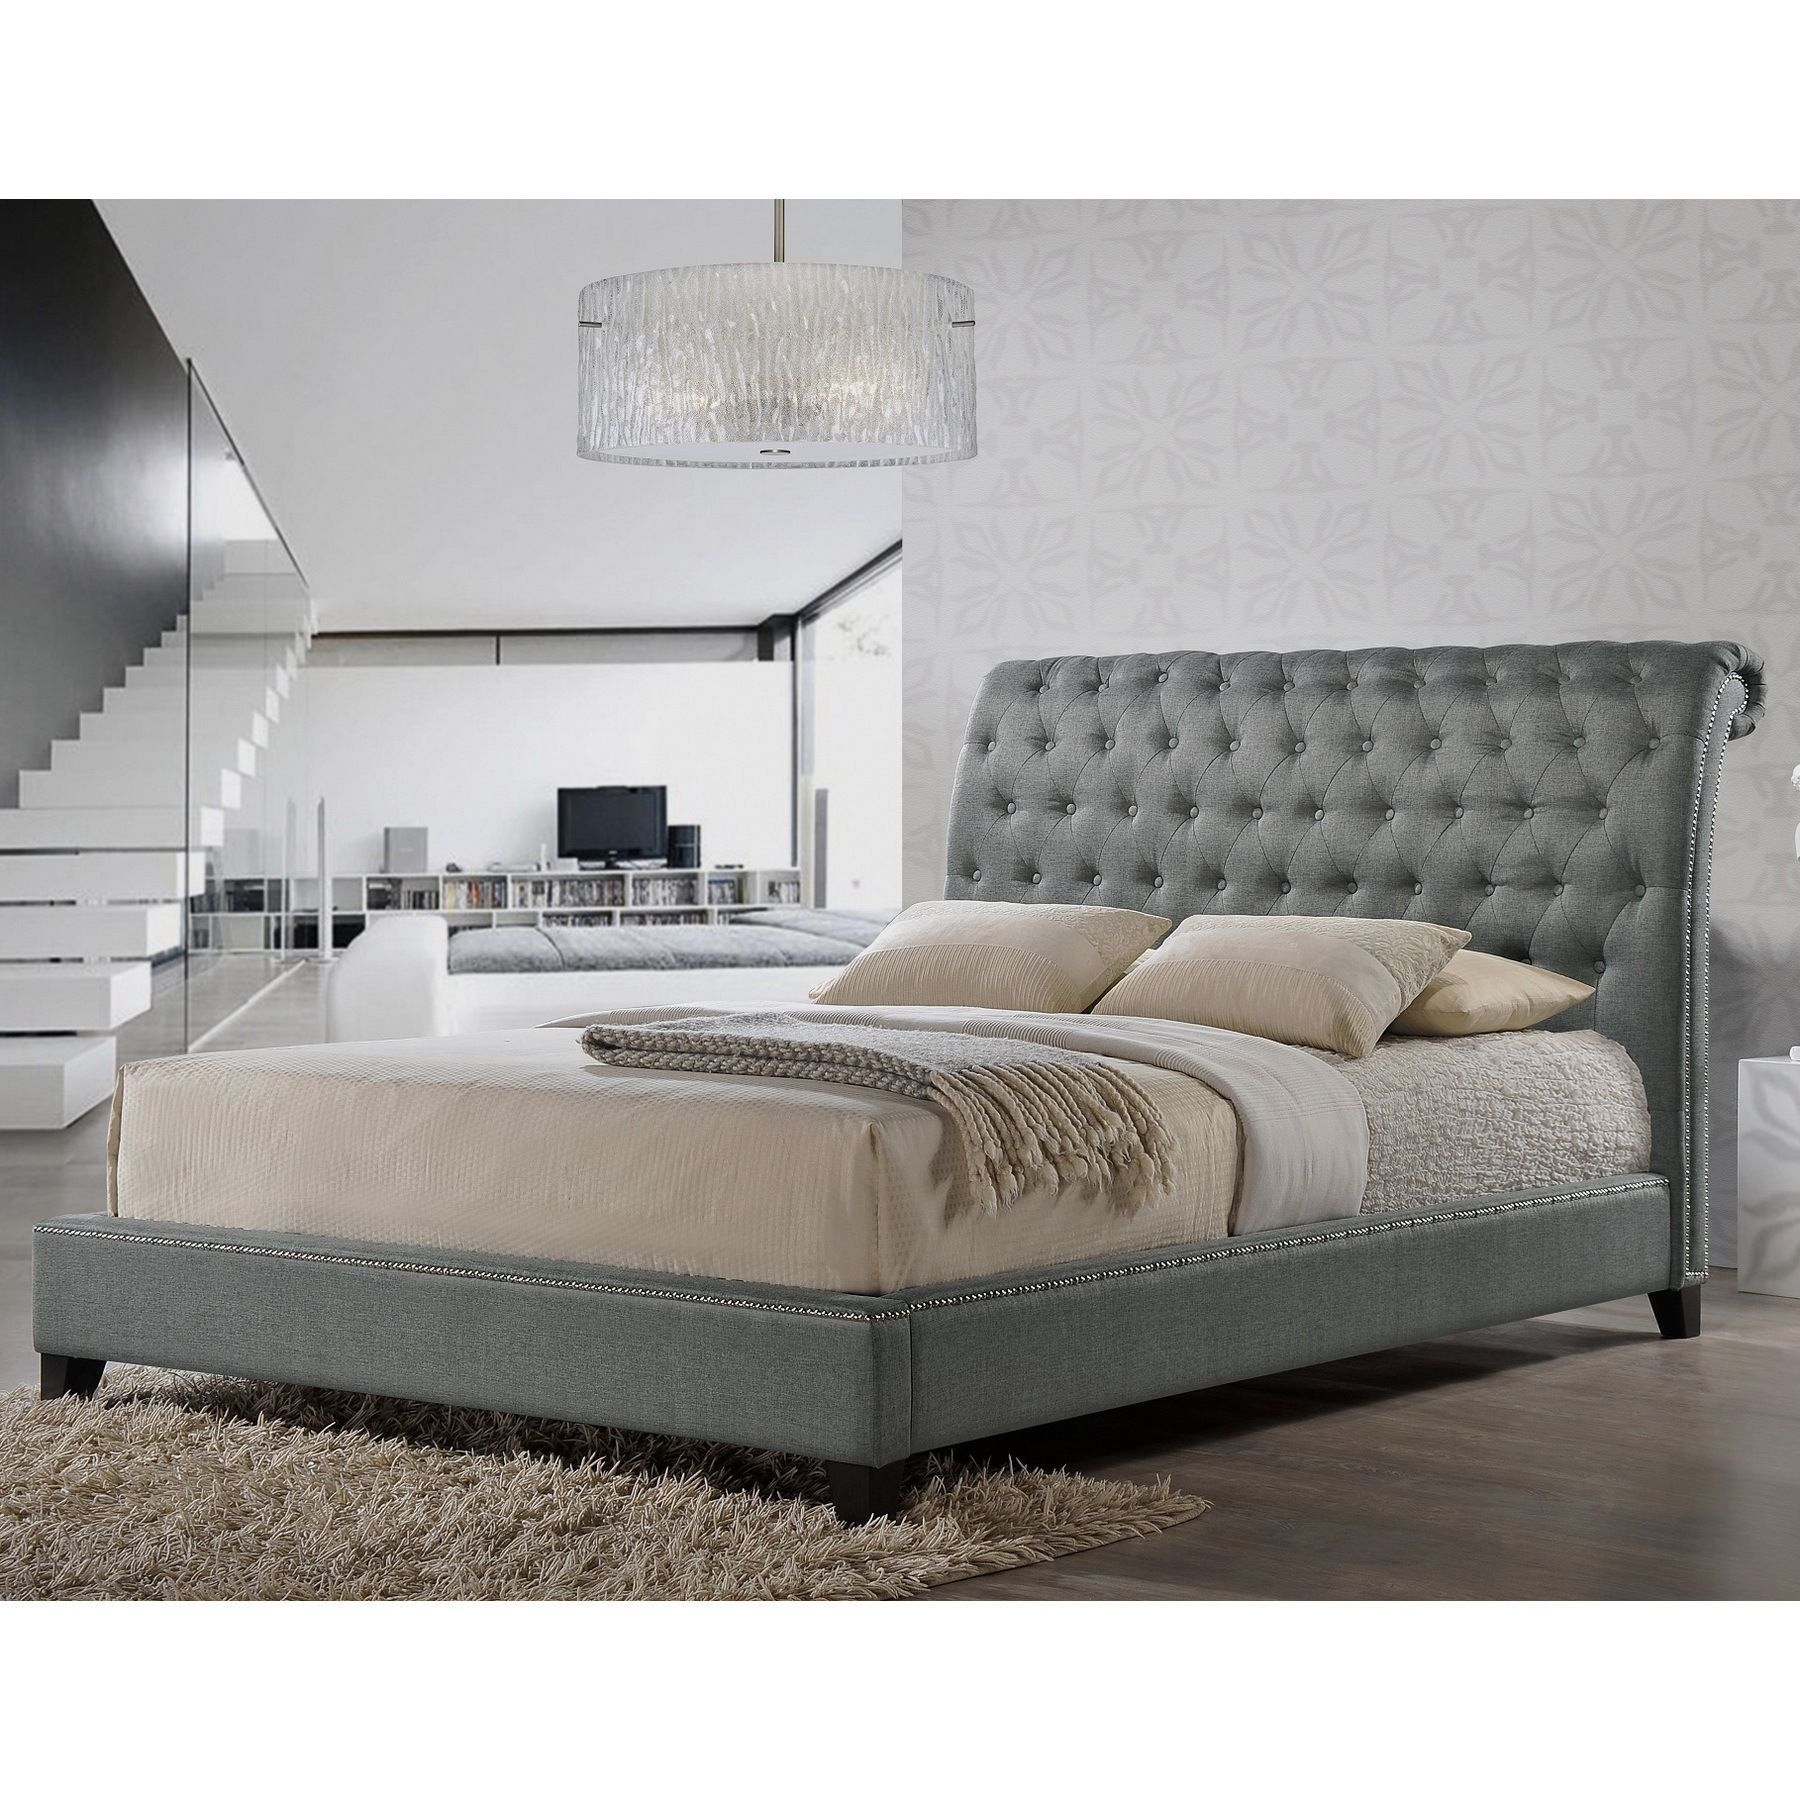 Baxton Studio Jazmin Tufted Gray Modern Bed With Upholstered Headboard King Size Grey